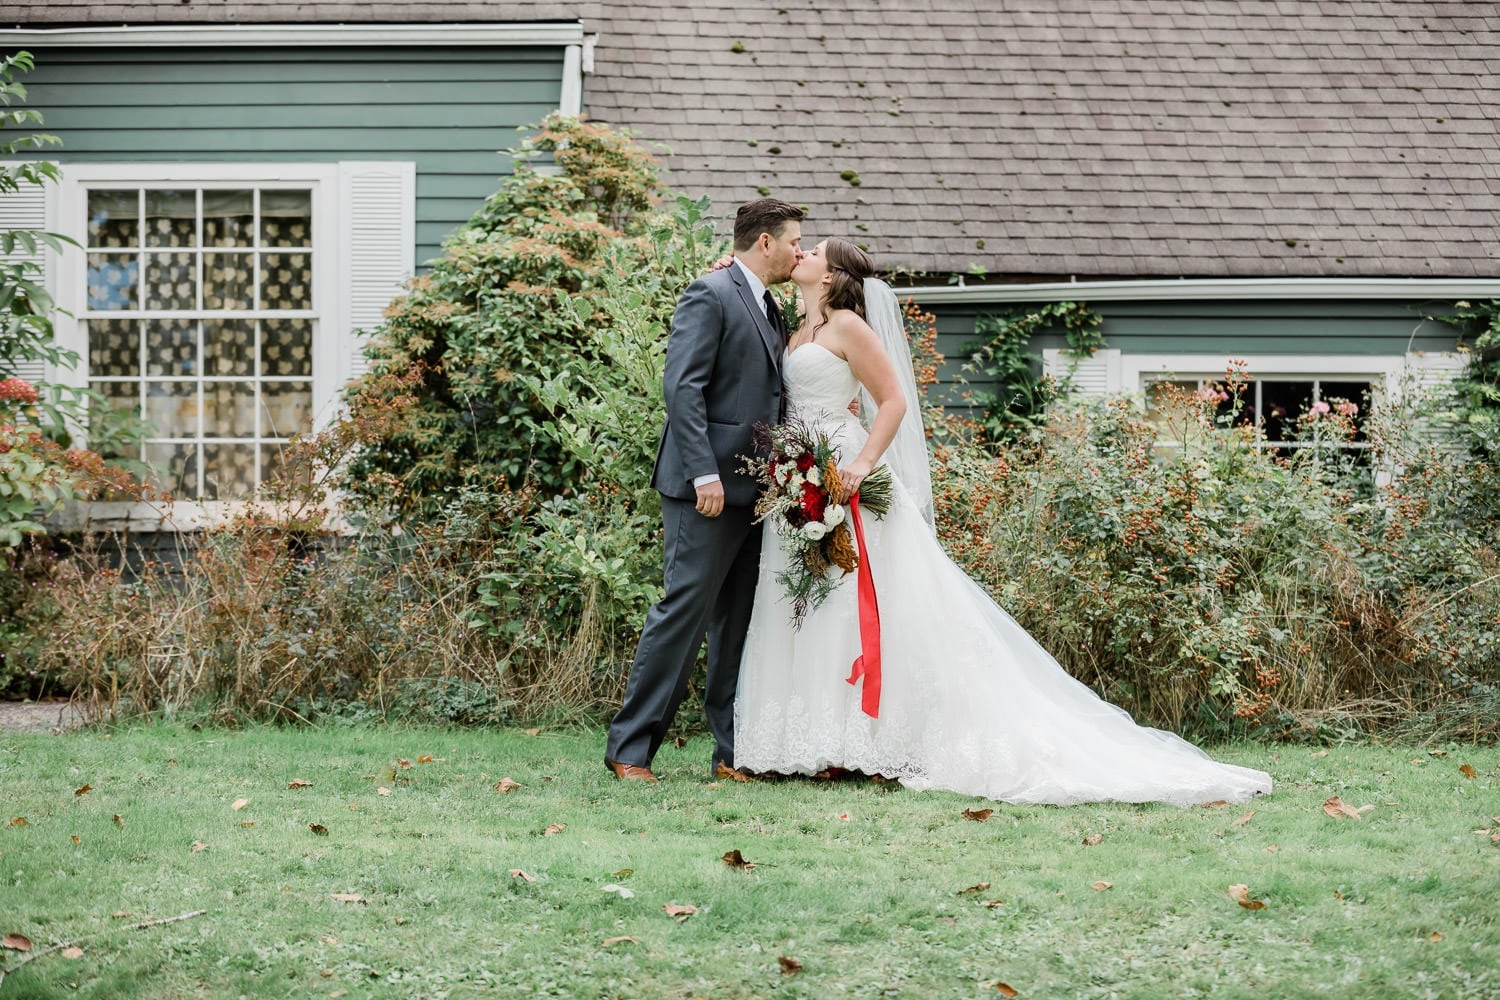 Rustic backyard wedding picture with bride and groom | Vancouver wedding photographer